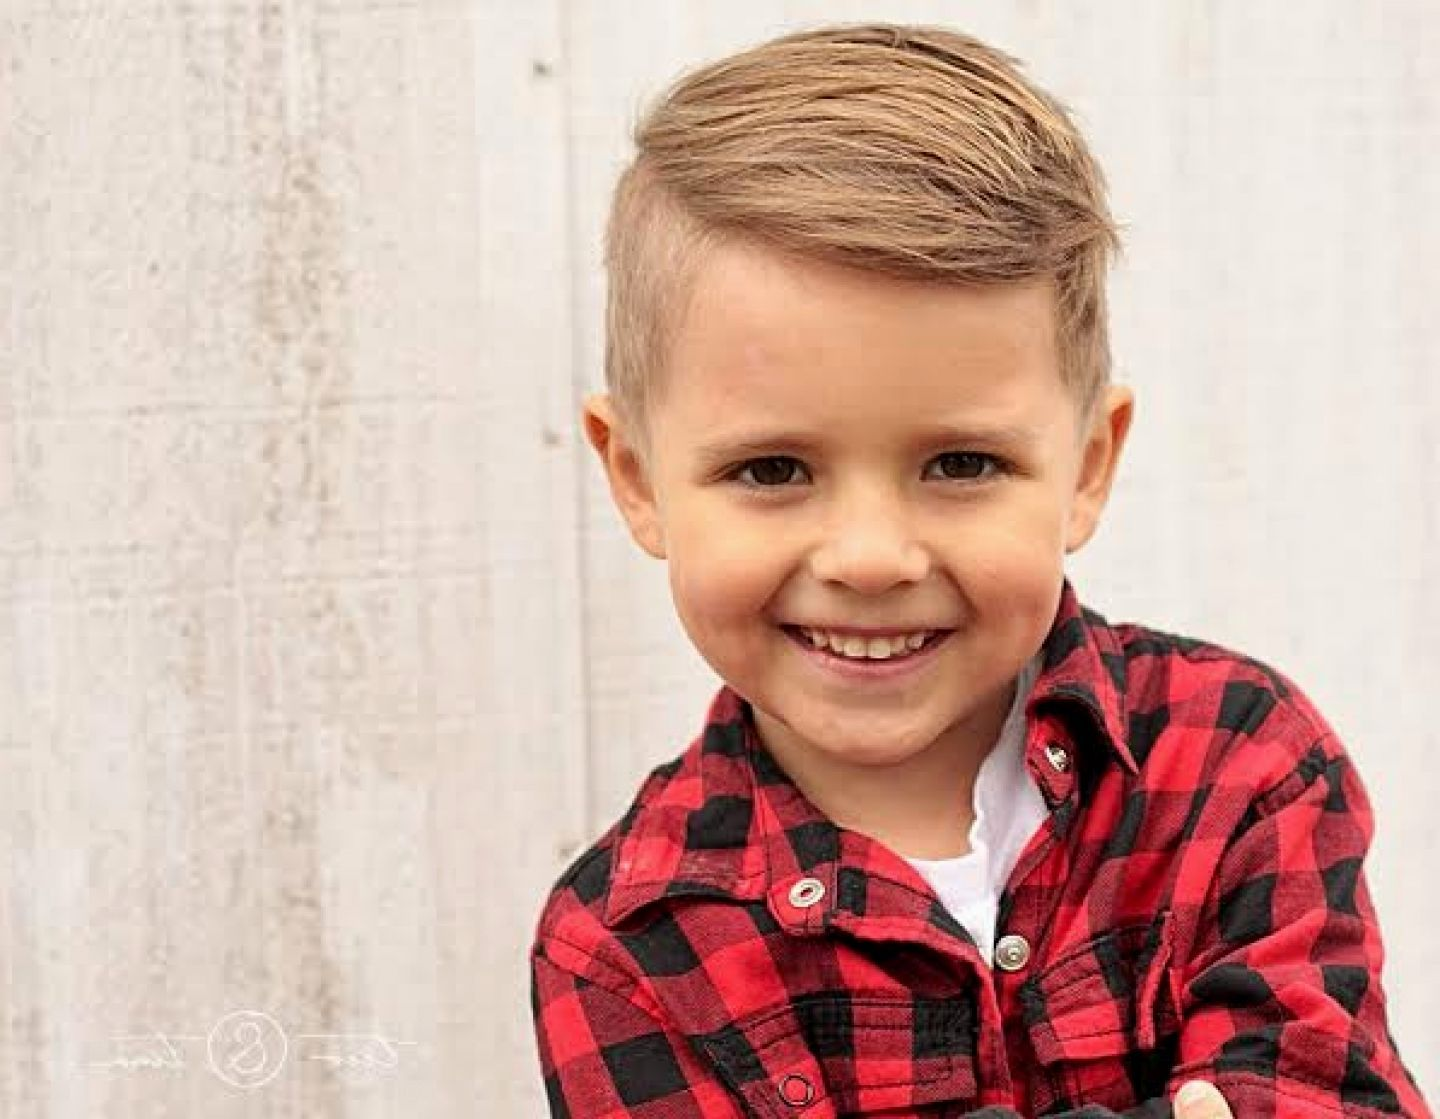 Boy Haircuts Short Archives Trendy Hairstyle Collection Young Boy Haircuts Boys Haircuts Little Boy Haircuts